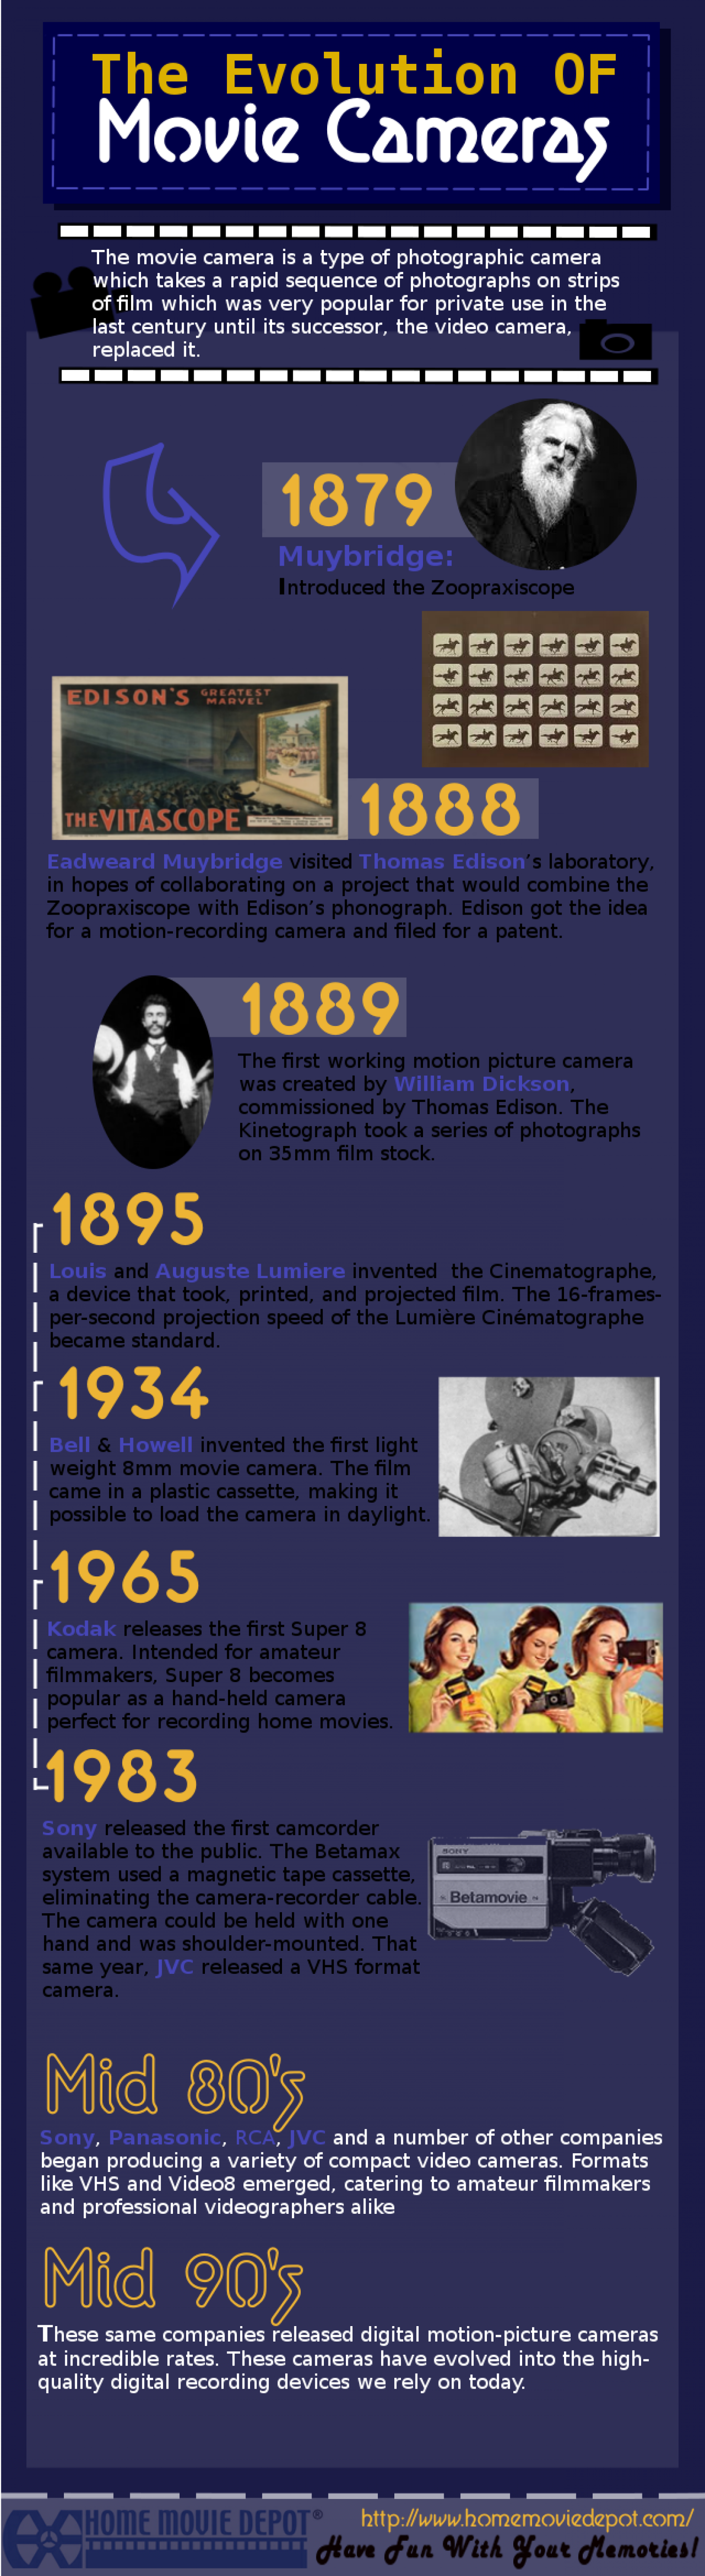 The Evolution of Movie Camera Infographic